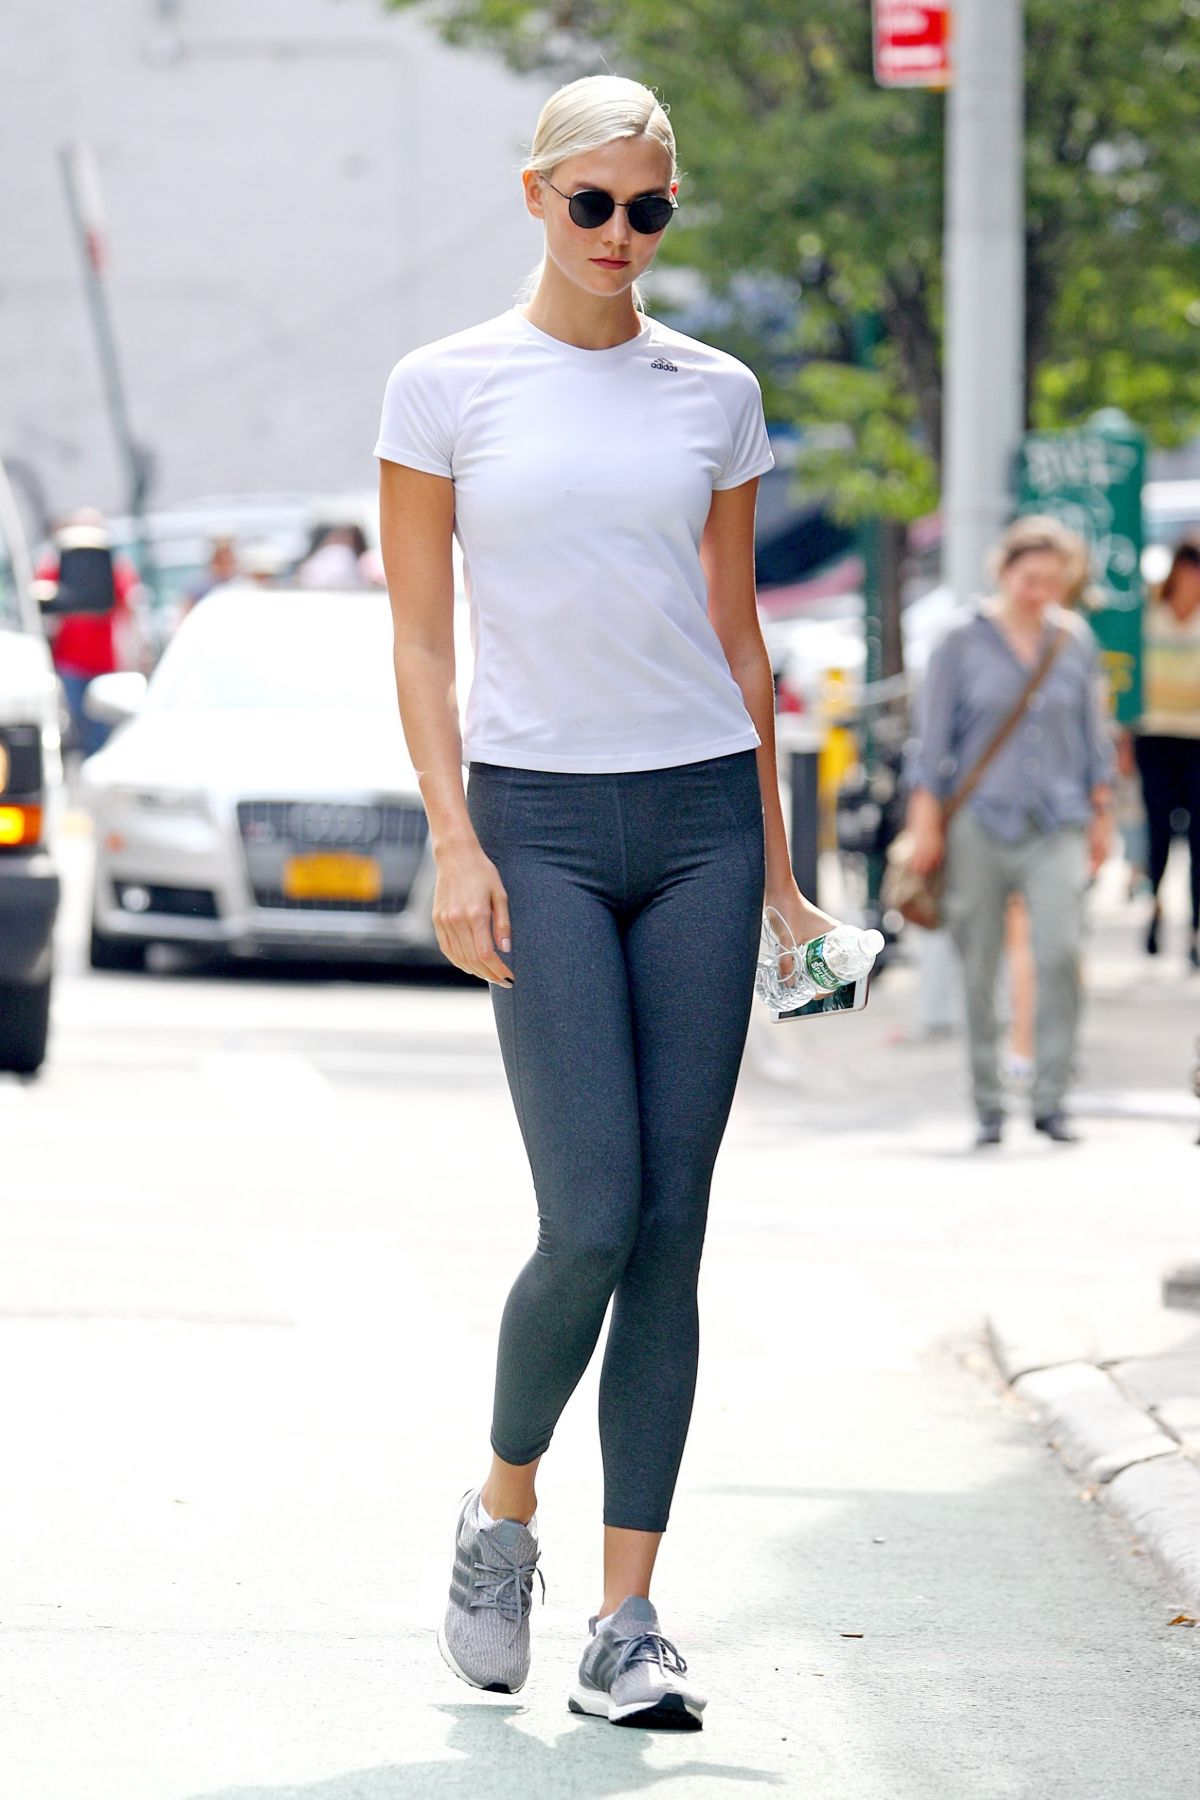 karlie kloss getting a workout at a gym ...